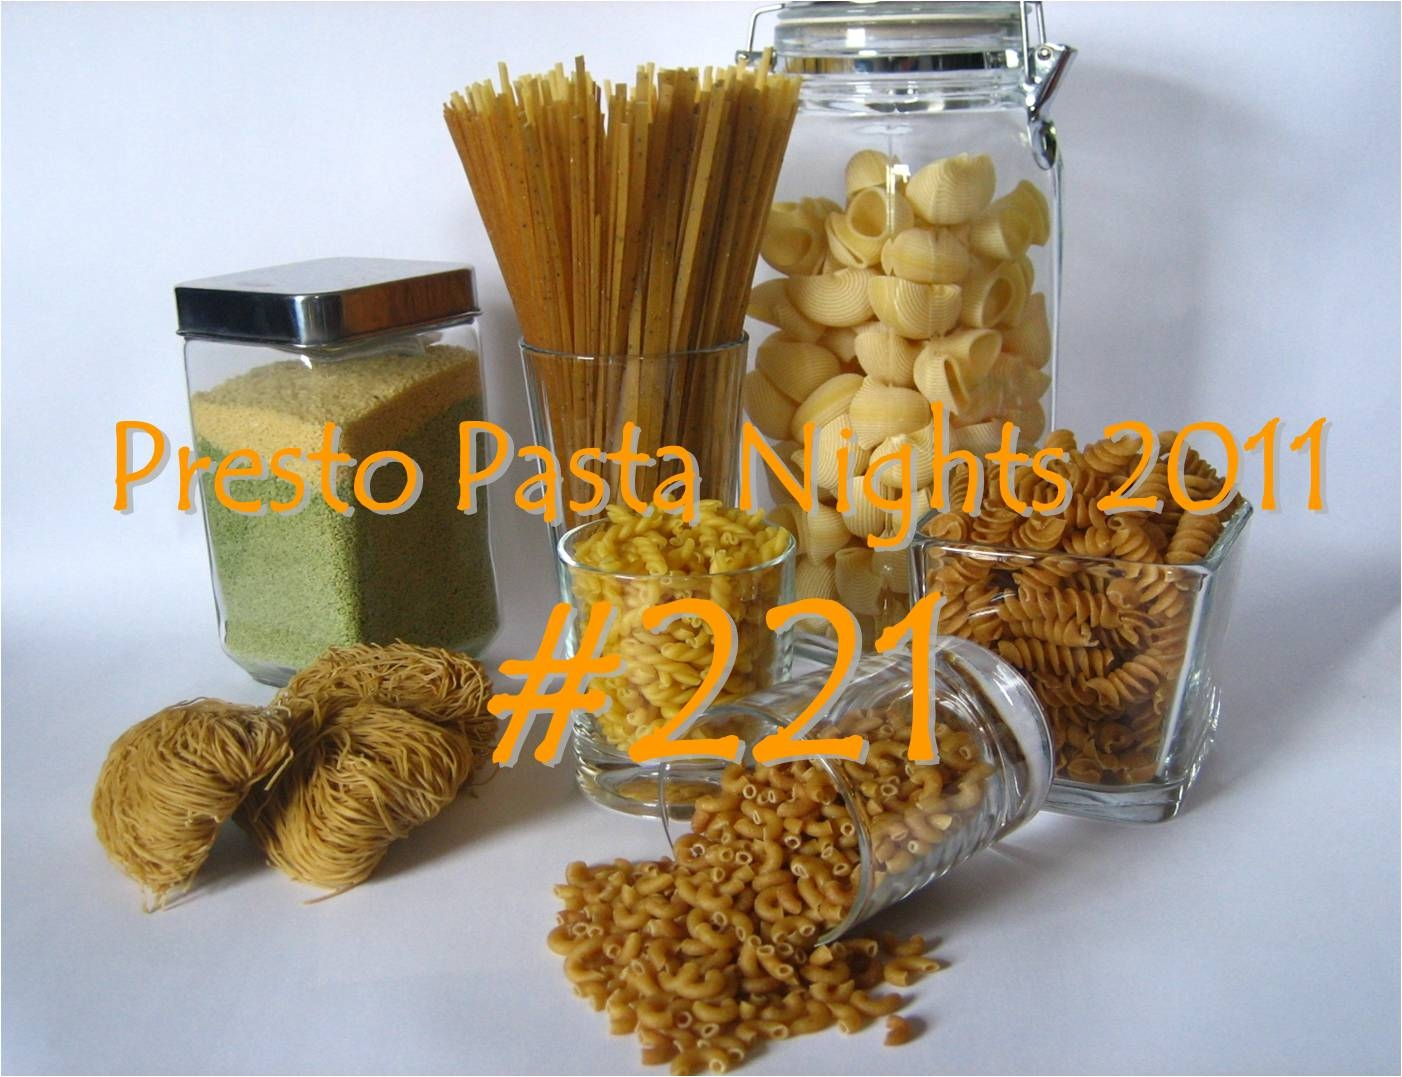 of presto pasta nights the creative pasta roundup will be available ...